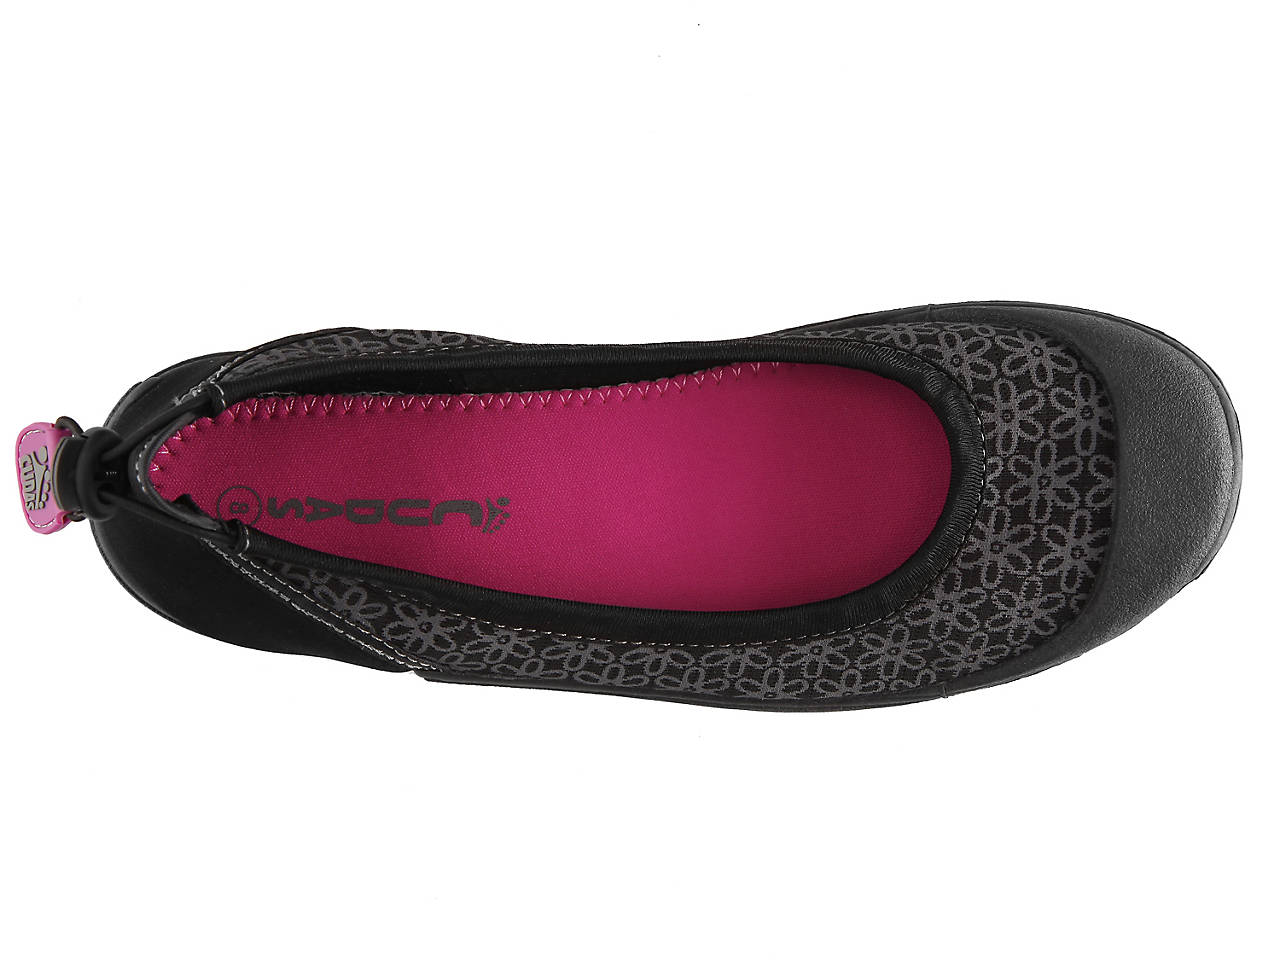 de253aacce2e Cudas Catalina Water Shoe Women s Shoes